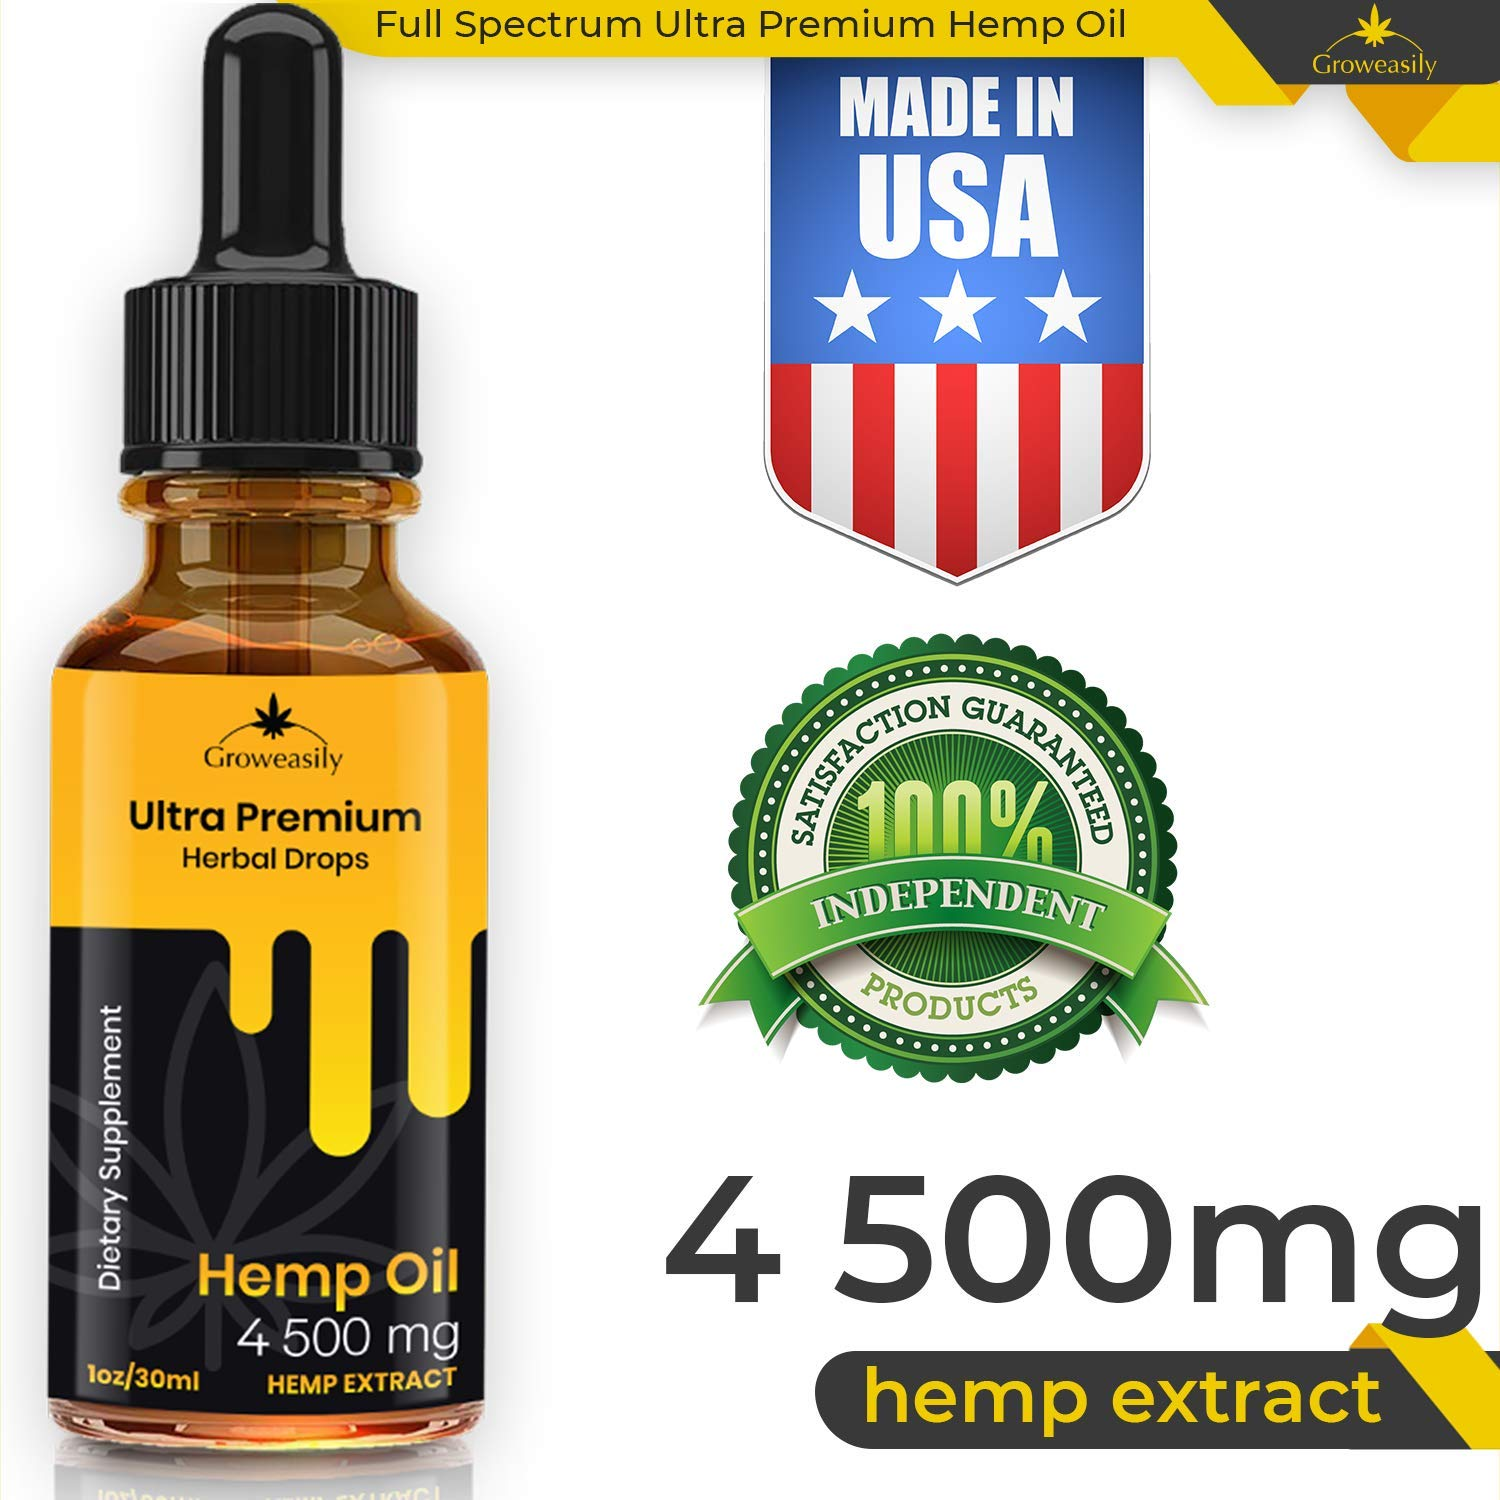 Hemp Oil Full Spectrum Extract 6500mg, All-Natural Drops for Pain, Stress, Anxiety Relief, Deep Restful Sleep